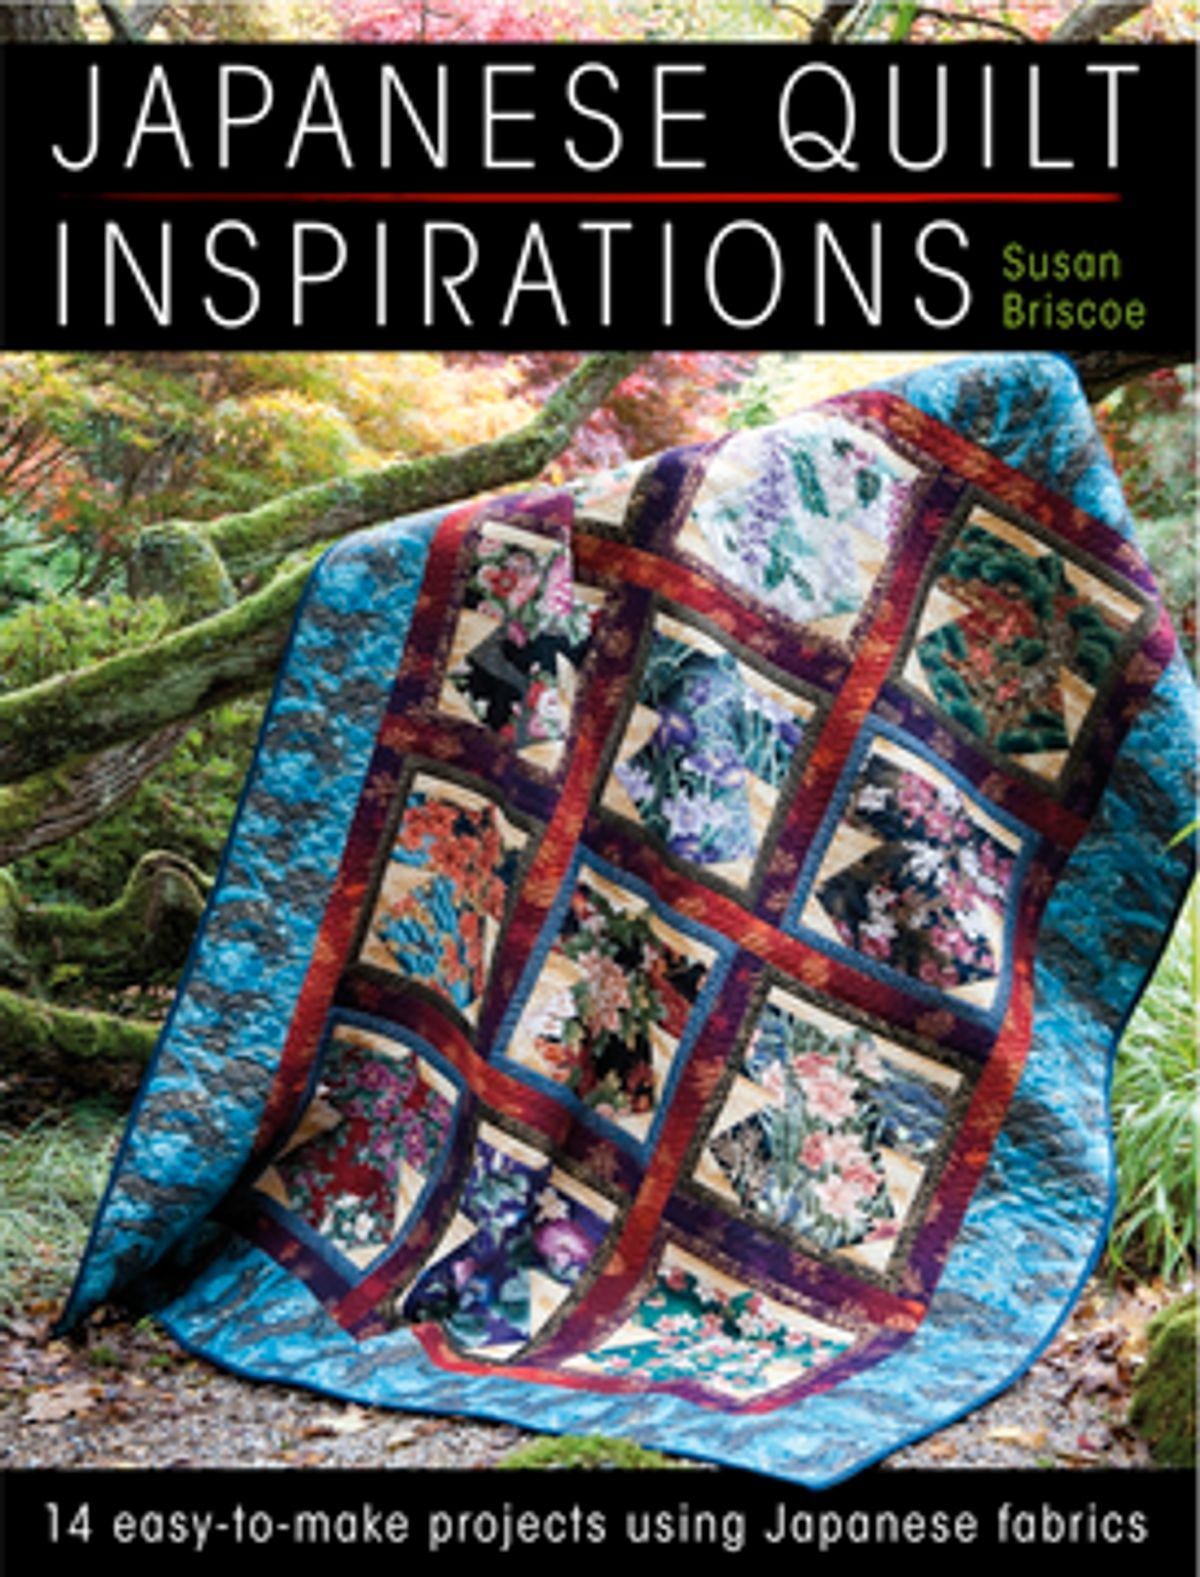 Japanese Quilt Inspirations by Susan Briscoe, ISBN: 9781446354193